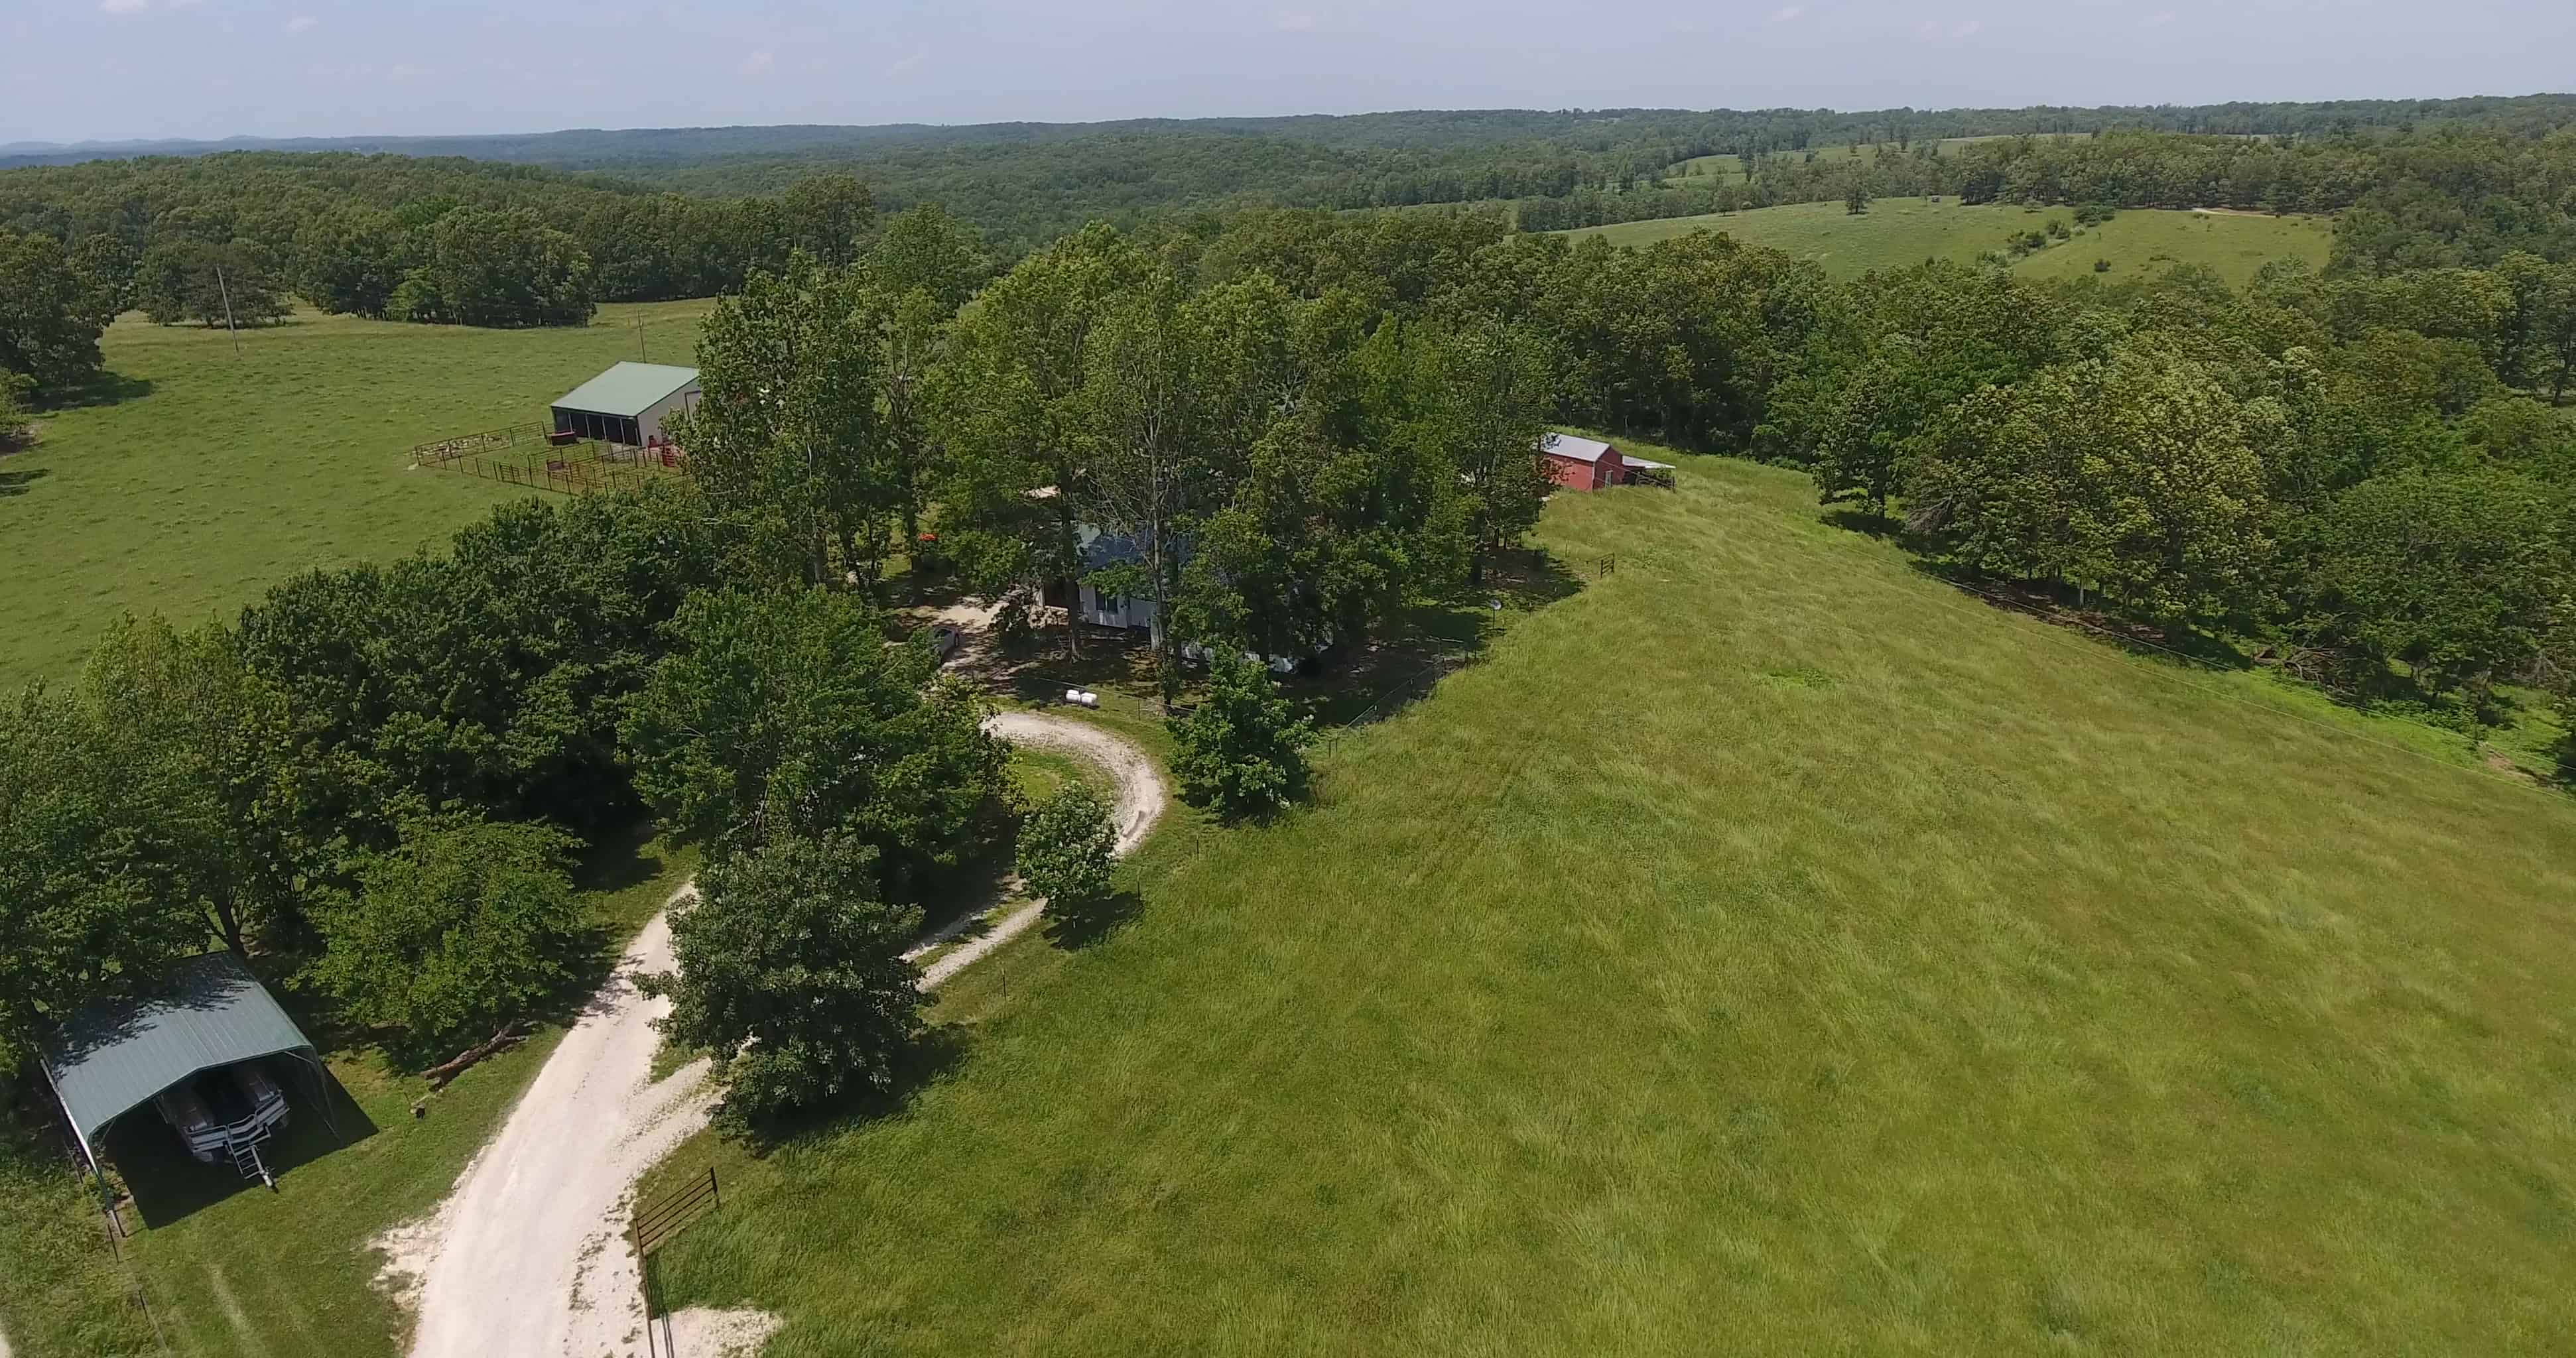 Southern Missouri Ozarks Farm for Sale